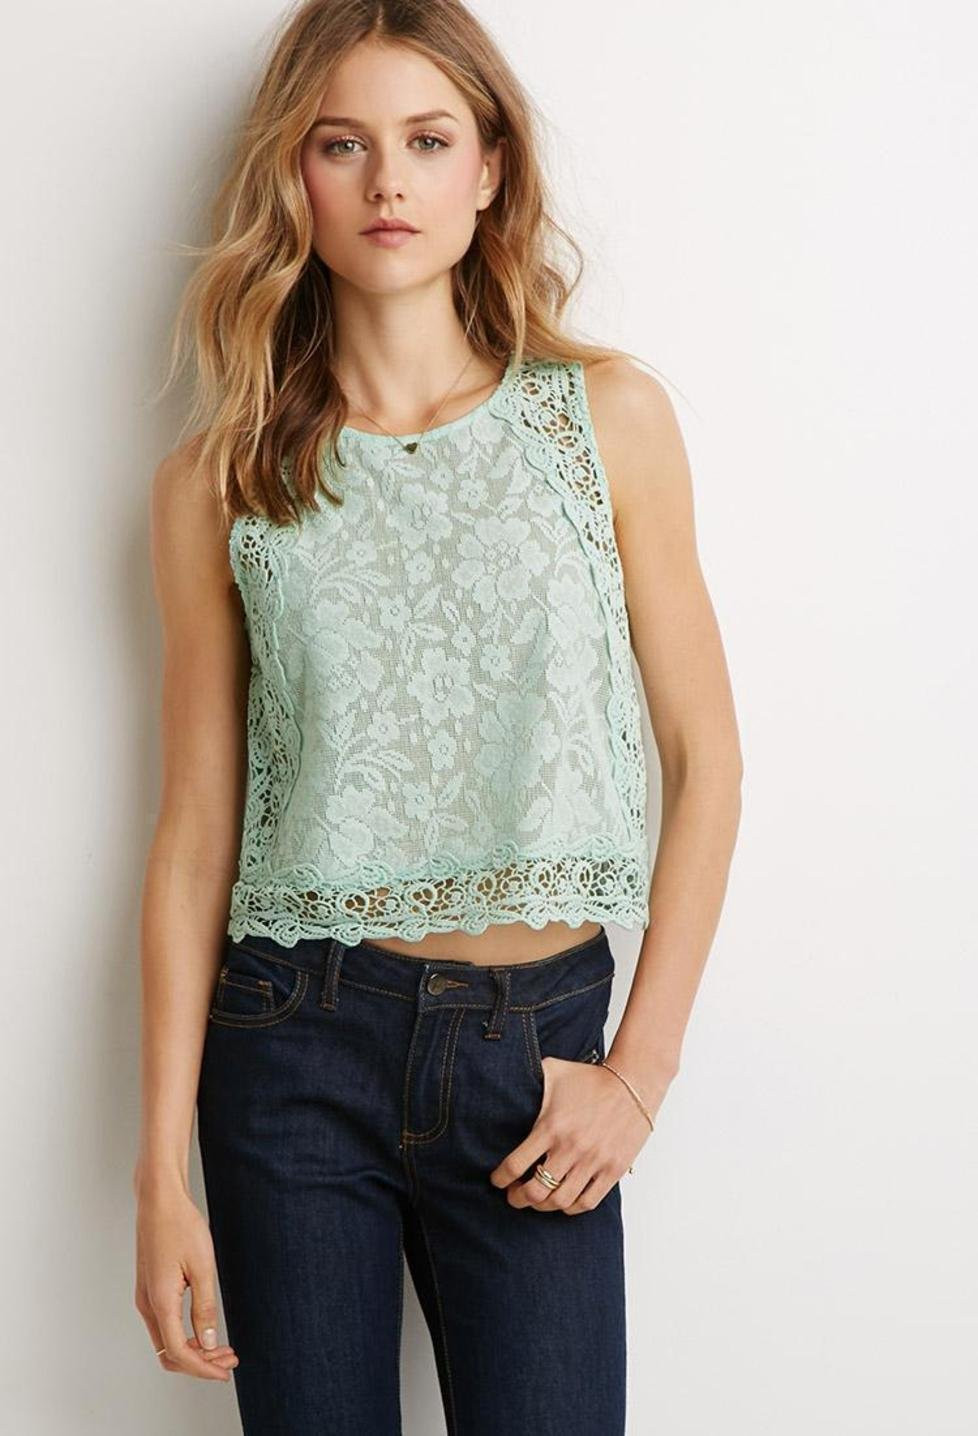 Beautiful forever 21 Mixed Floral Crochet top Crochet tops forever 21 Of Beautiful forever 21 Scalloped Crochet top In Beige Cream Crochet tops forever 21